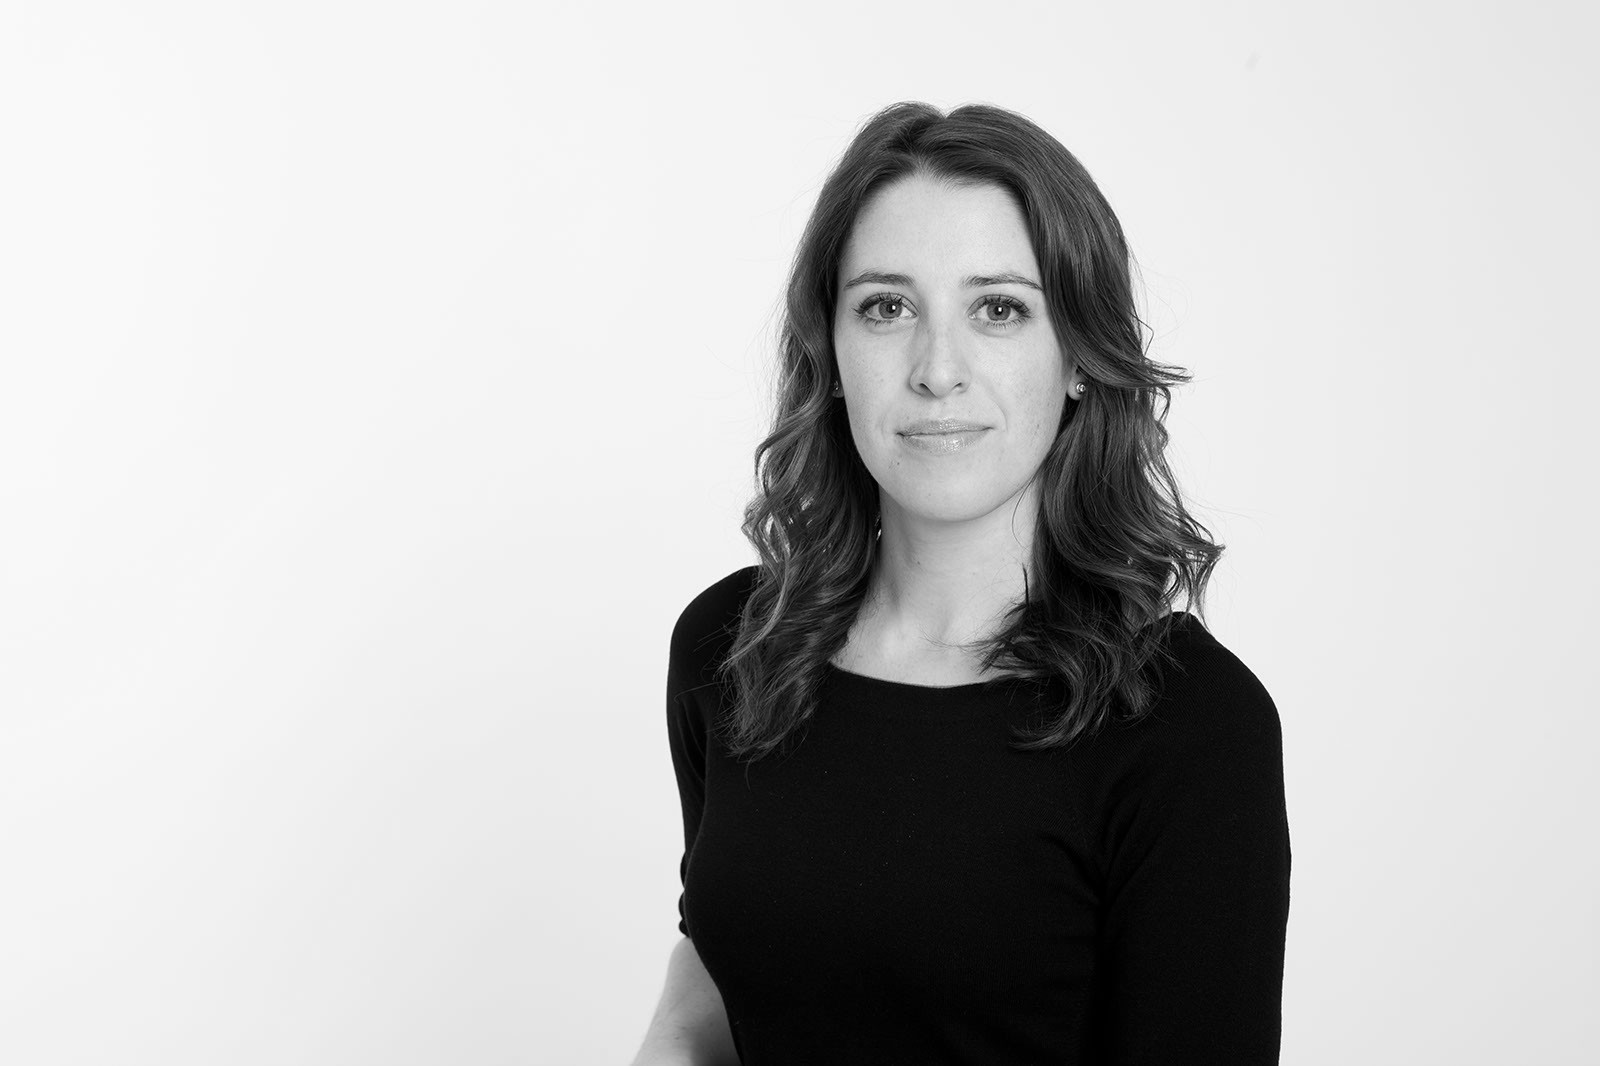 Caroline Chaumont, Engagement Consultant, Hill + Knowlton